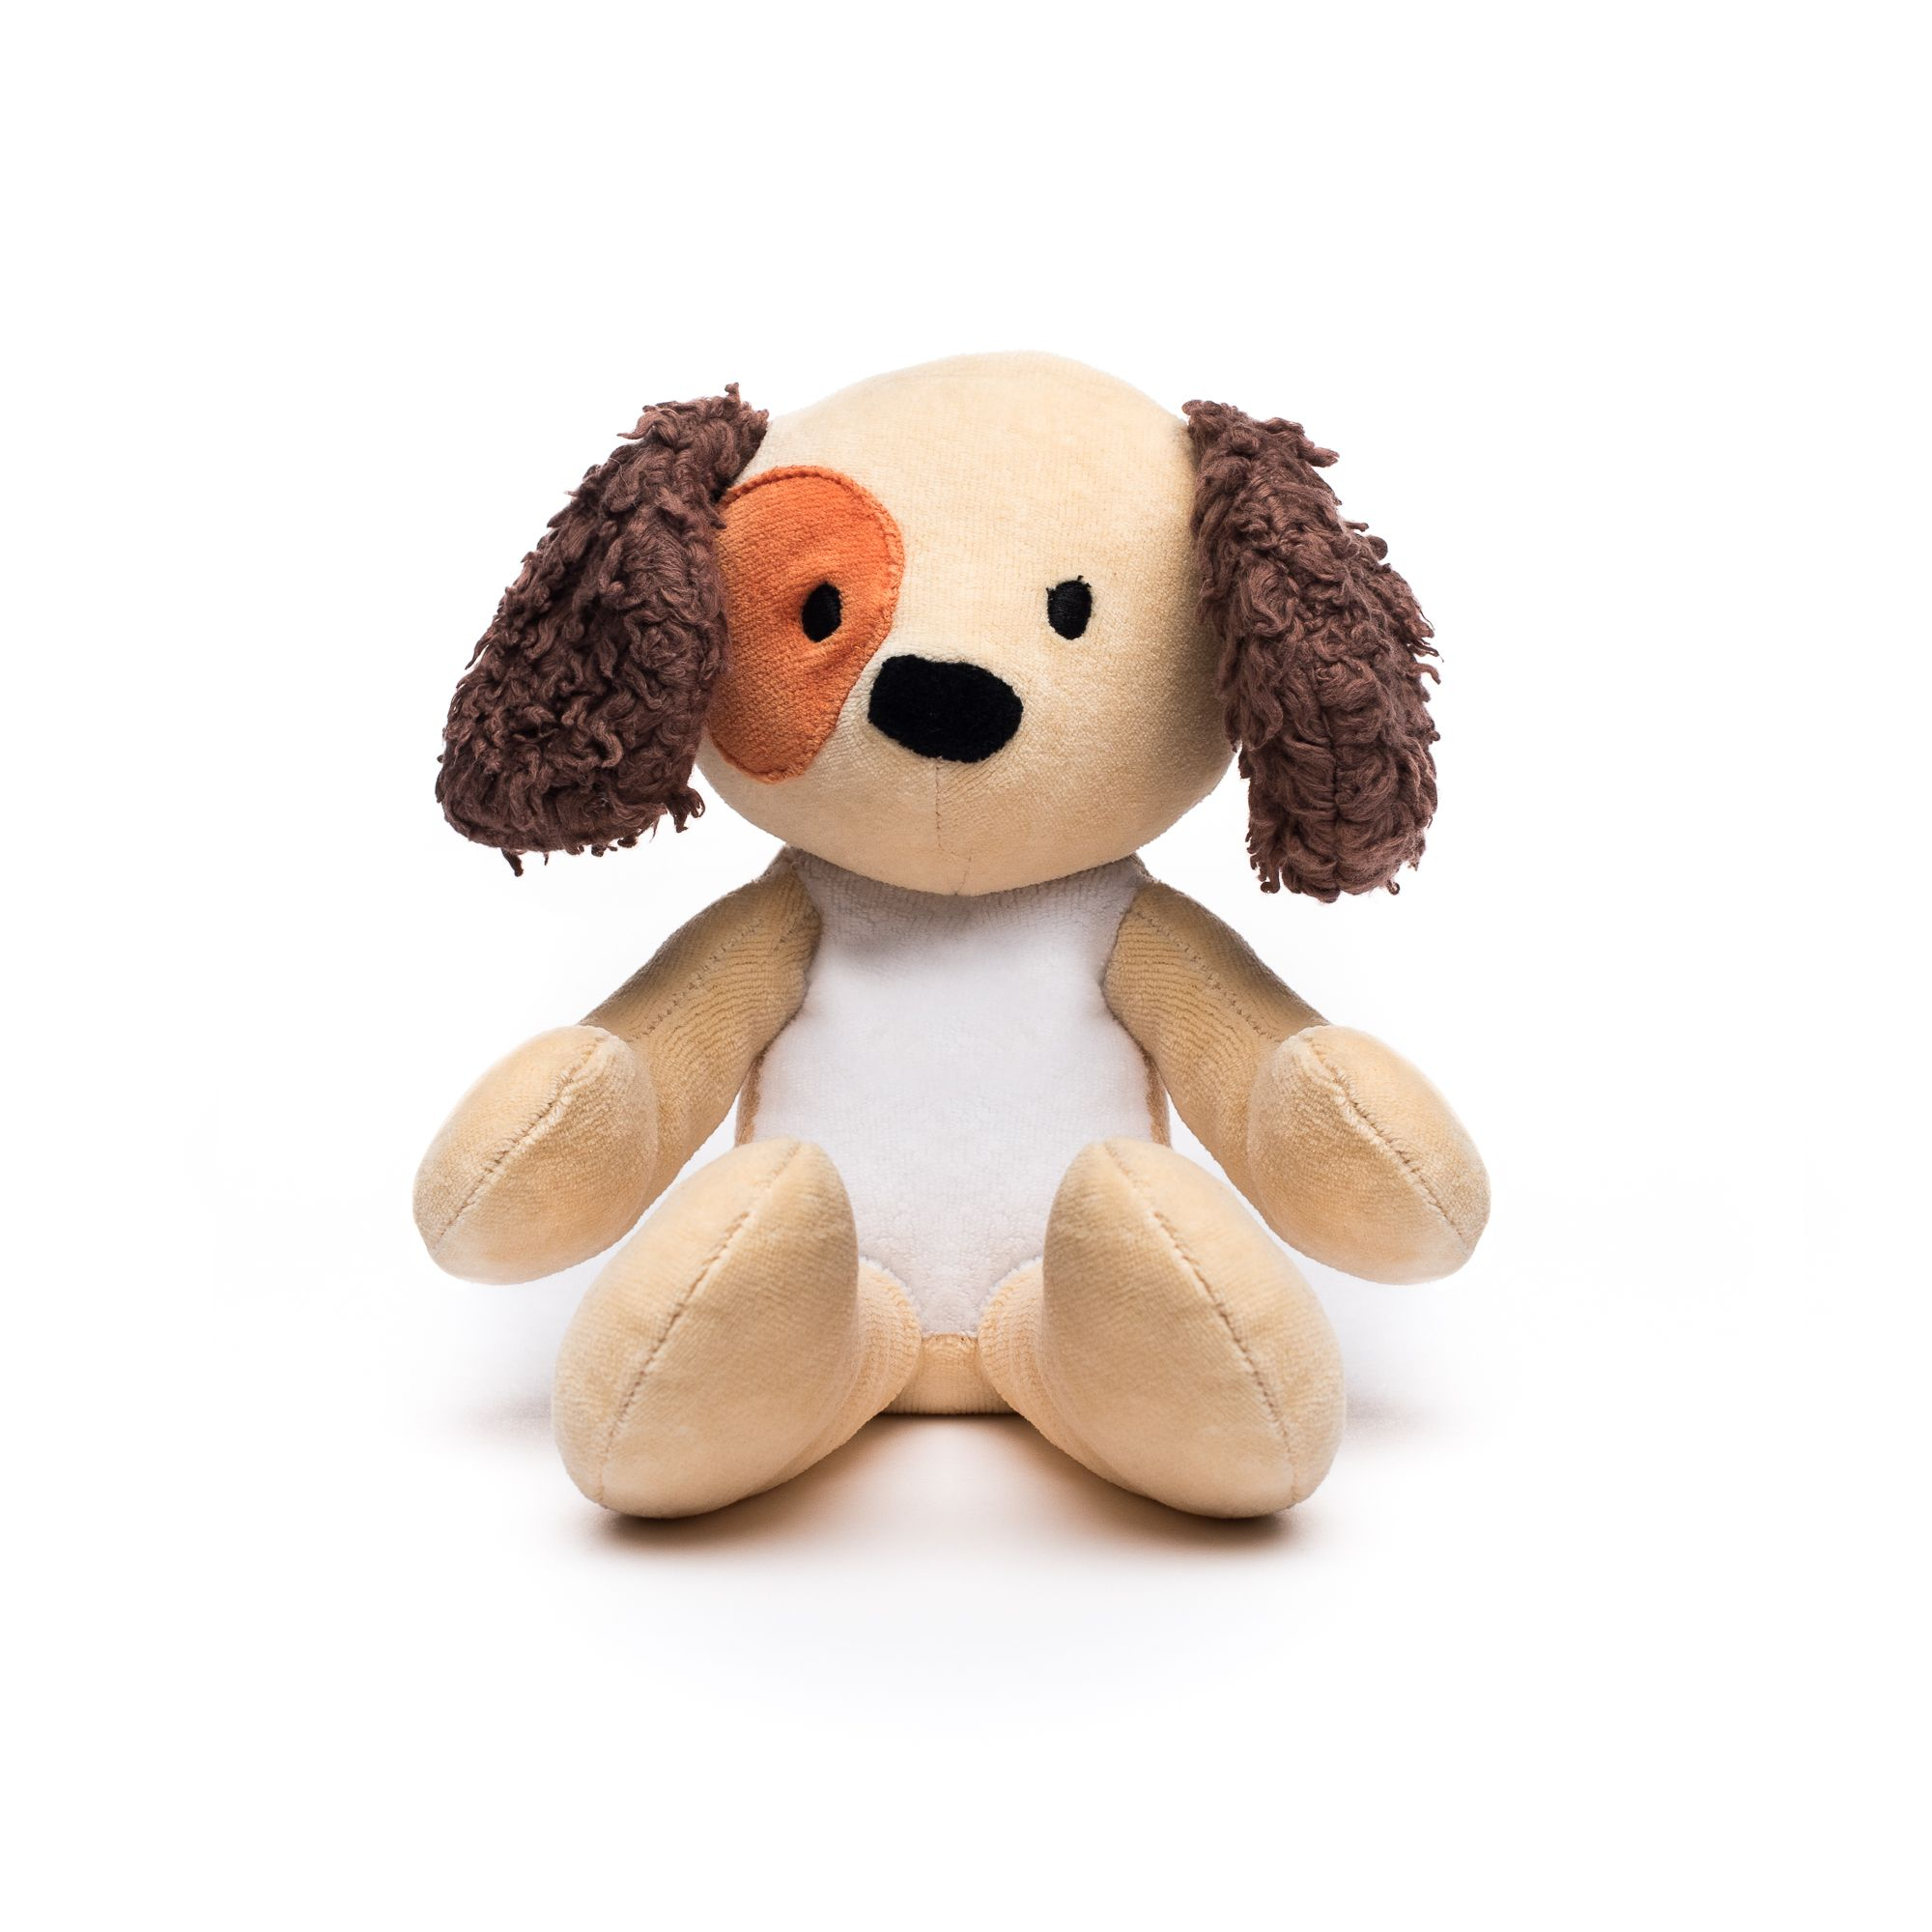 Do You Love Me Animal Plush Toys Puppy Plush Toys Dog Stuffed